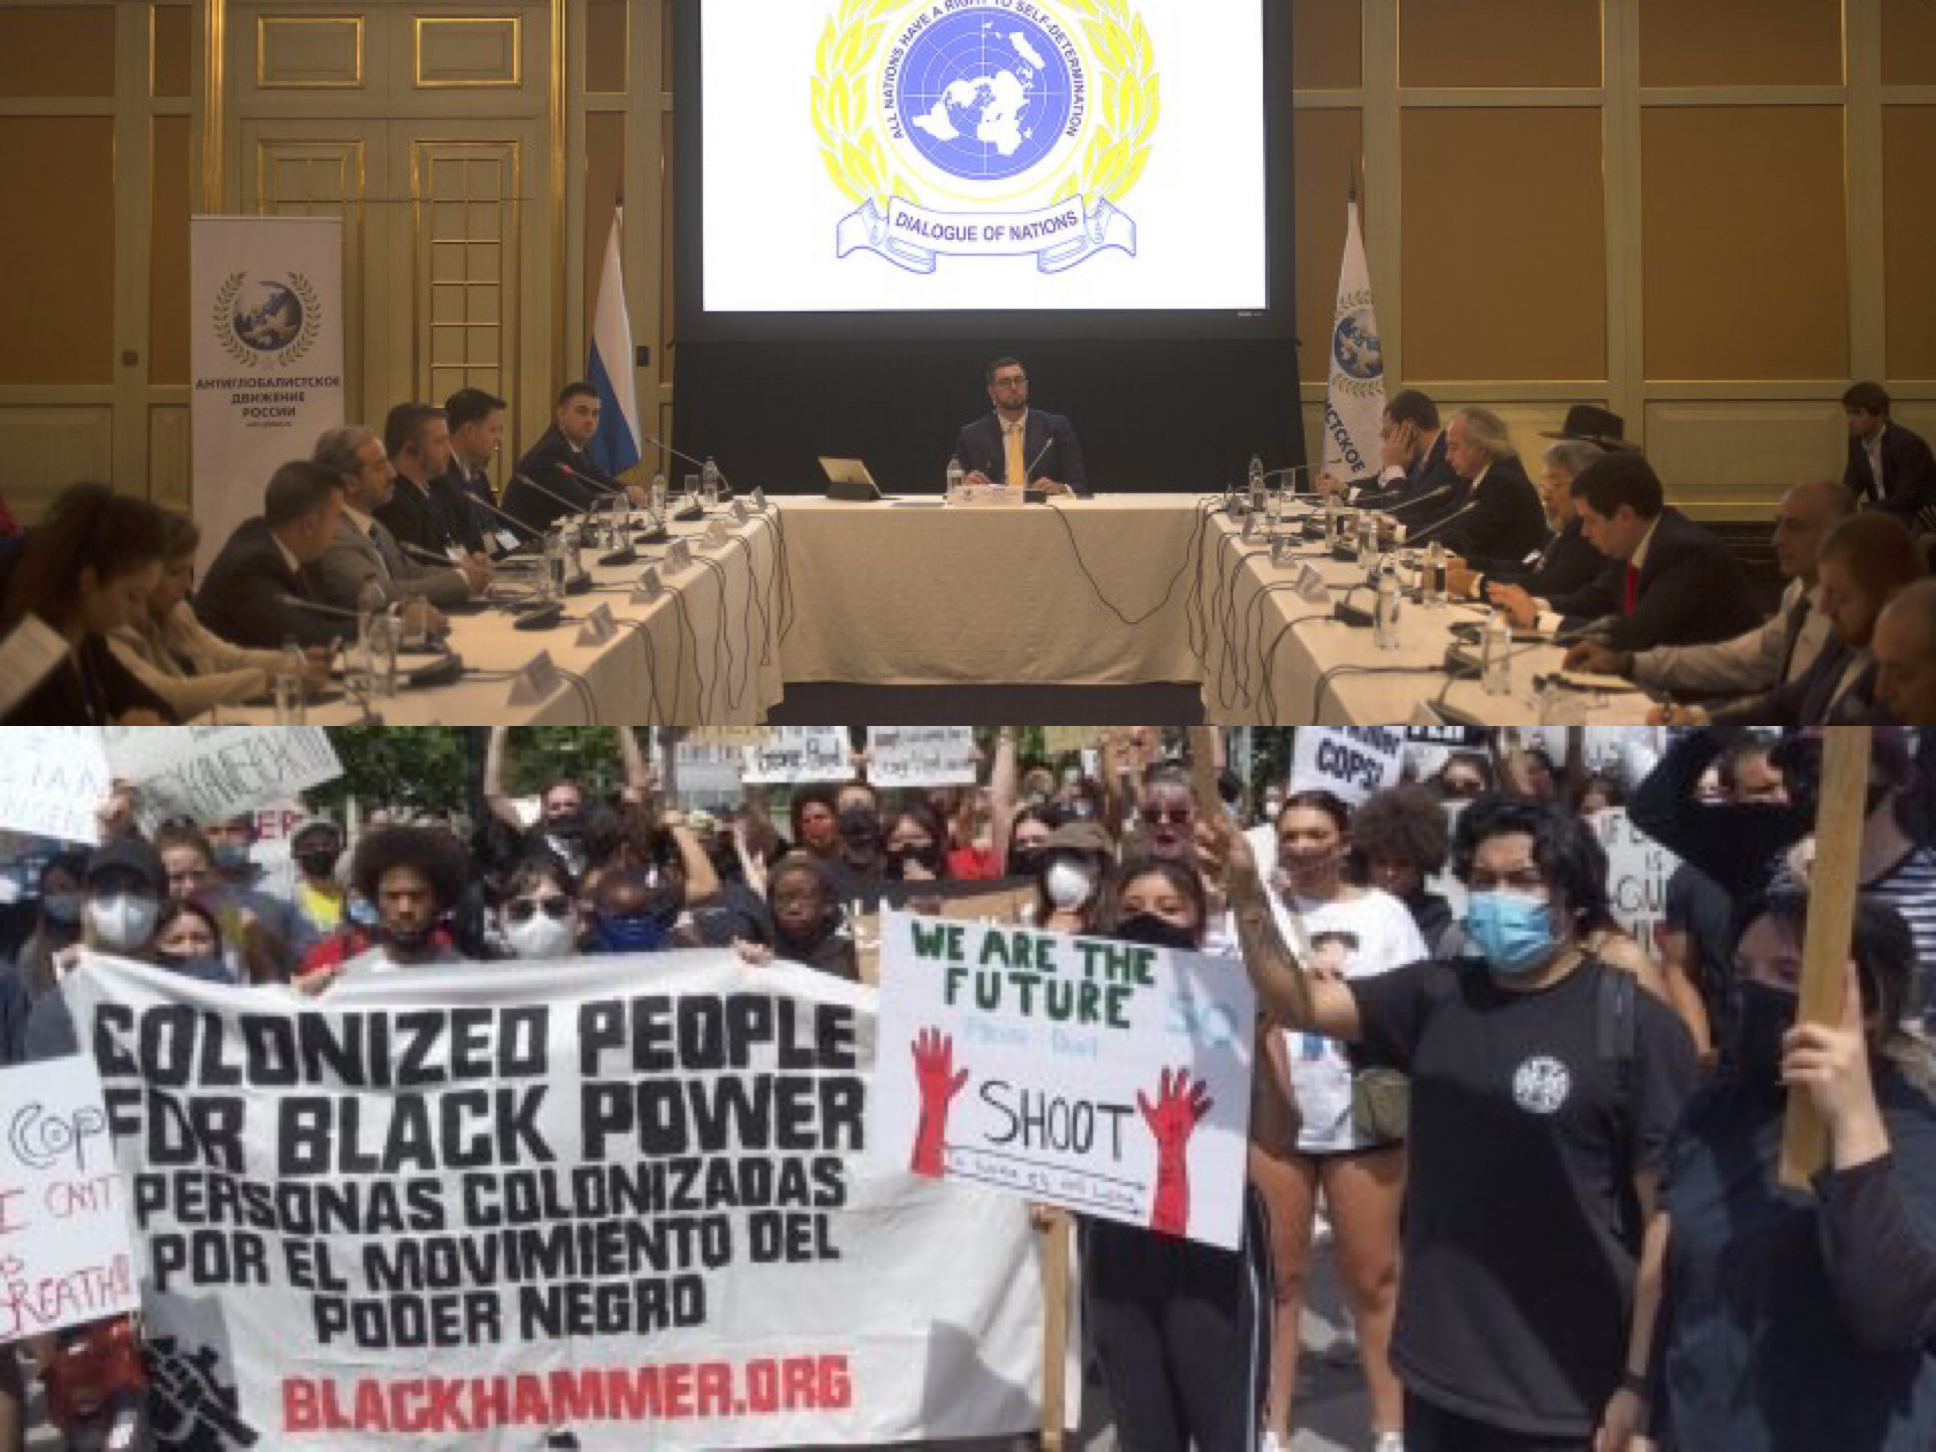 The International Human Rights Defence Committee Joins the fight against Black Genocide!